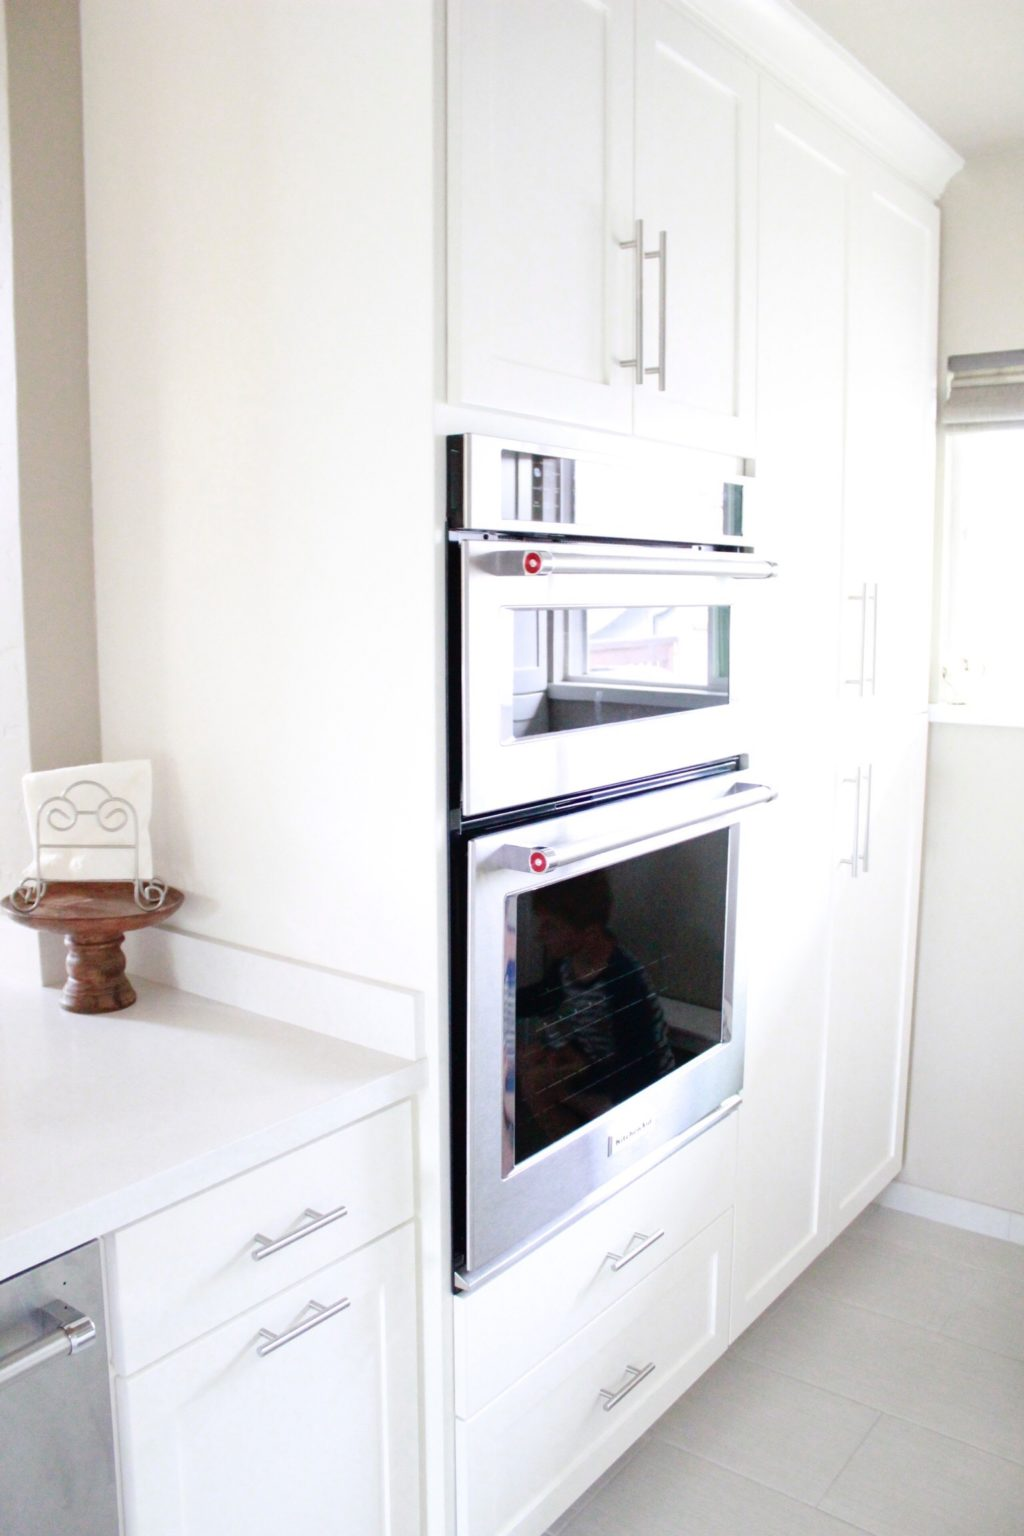 Glass Cabinets Were Used In 2 Of The Cabinet Doors To Display Pretty White  Dishes.